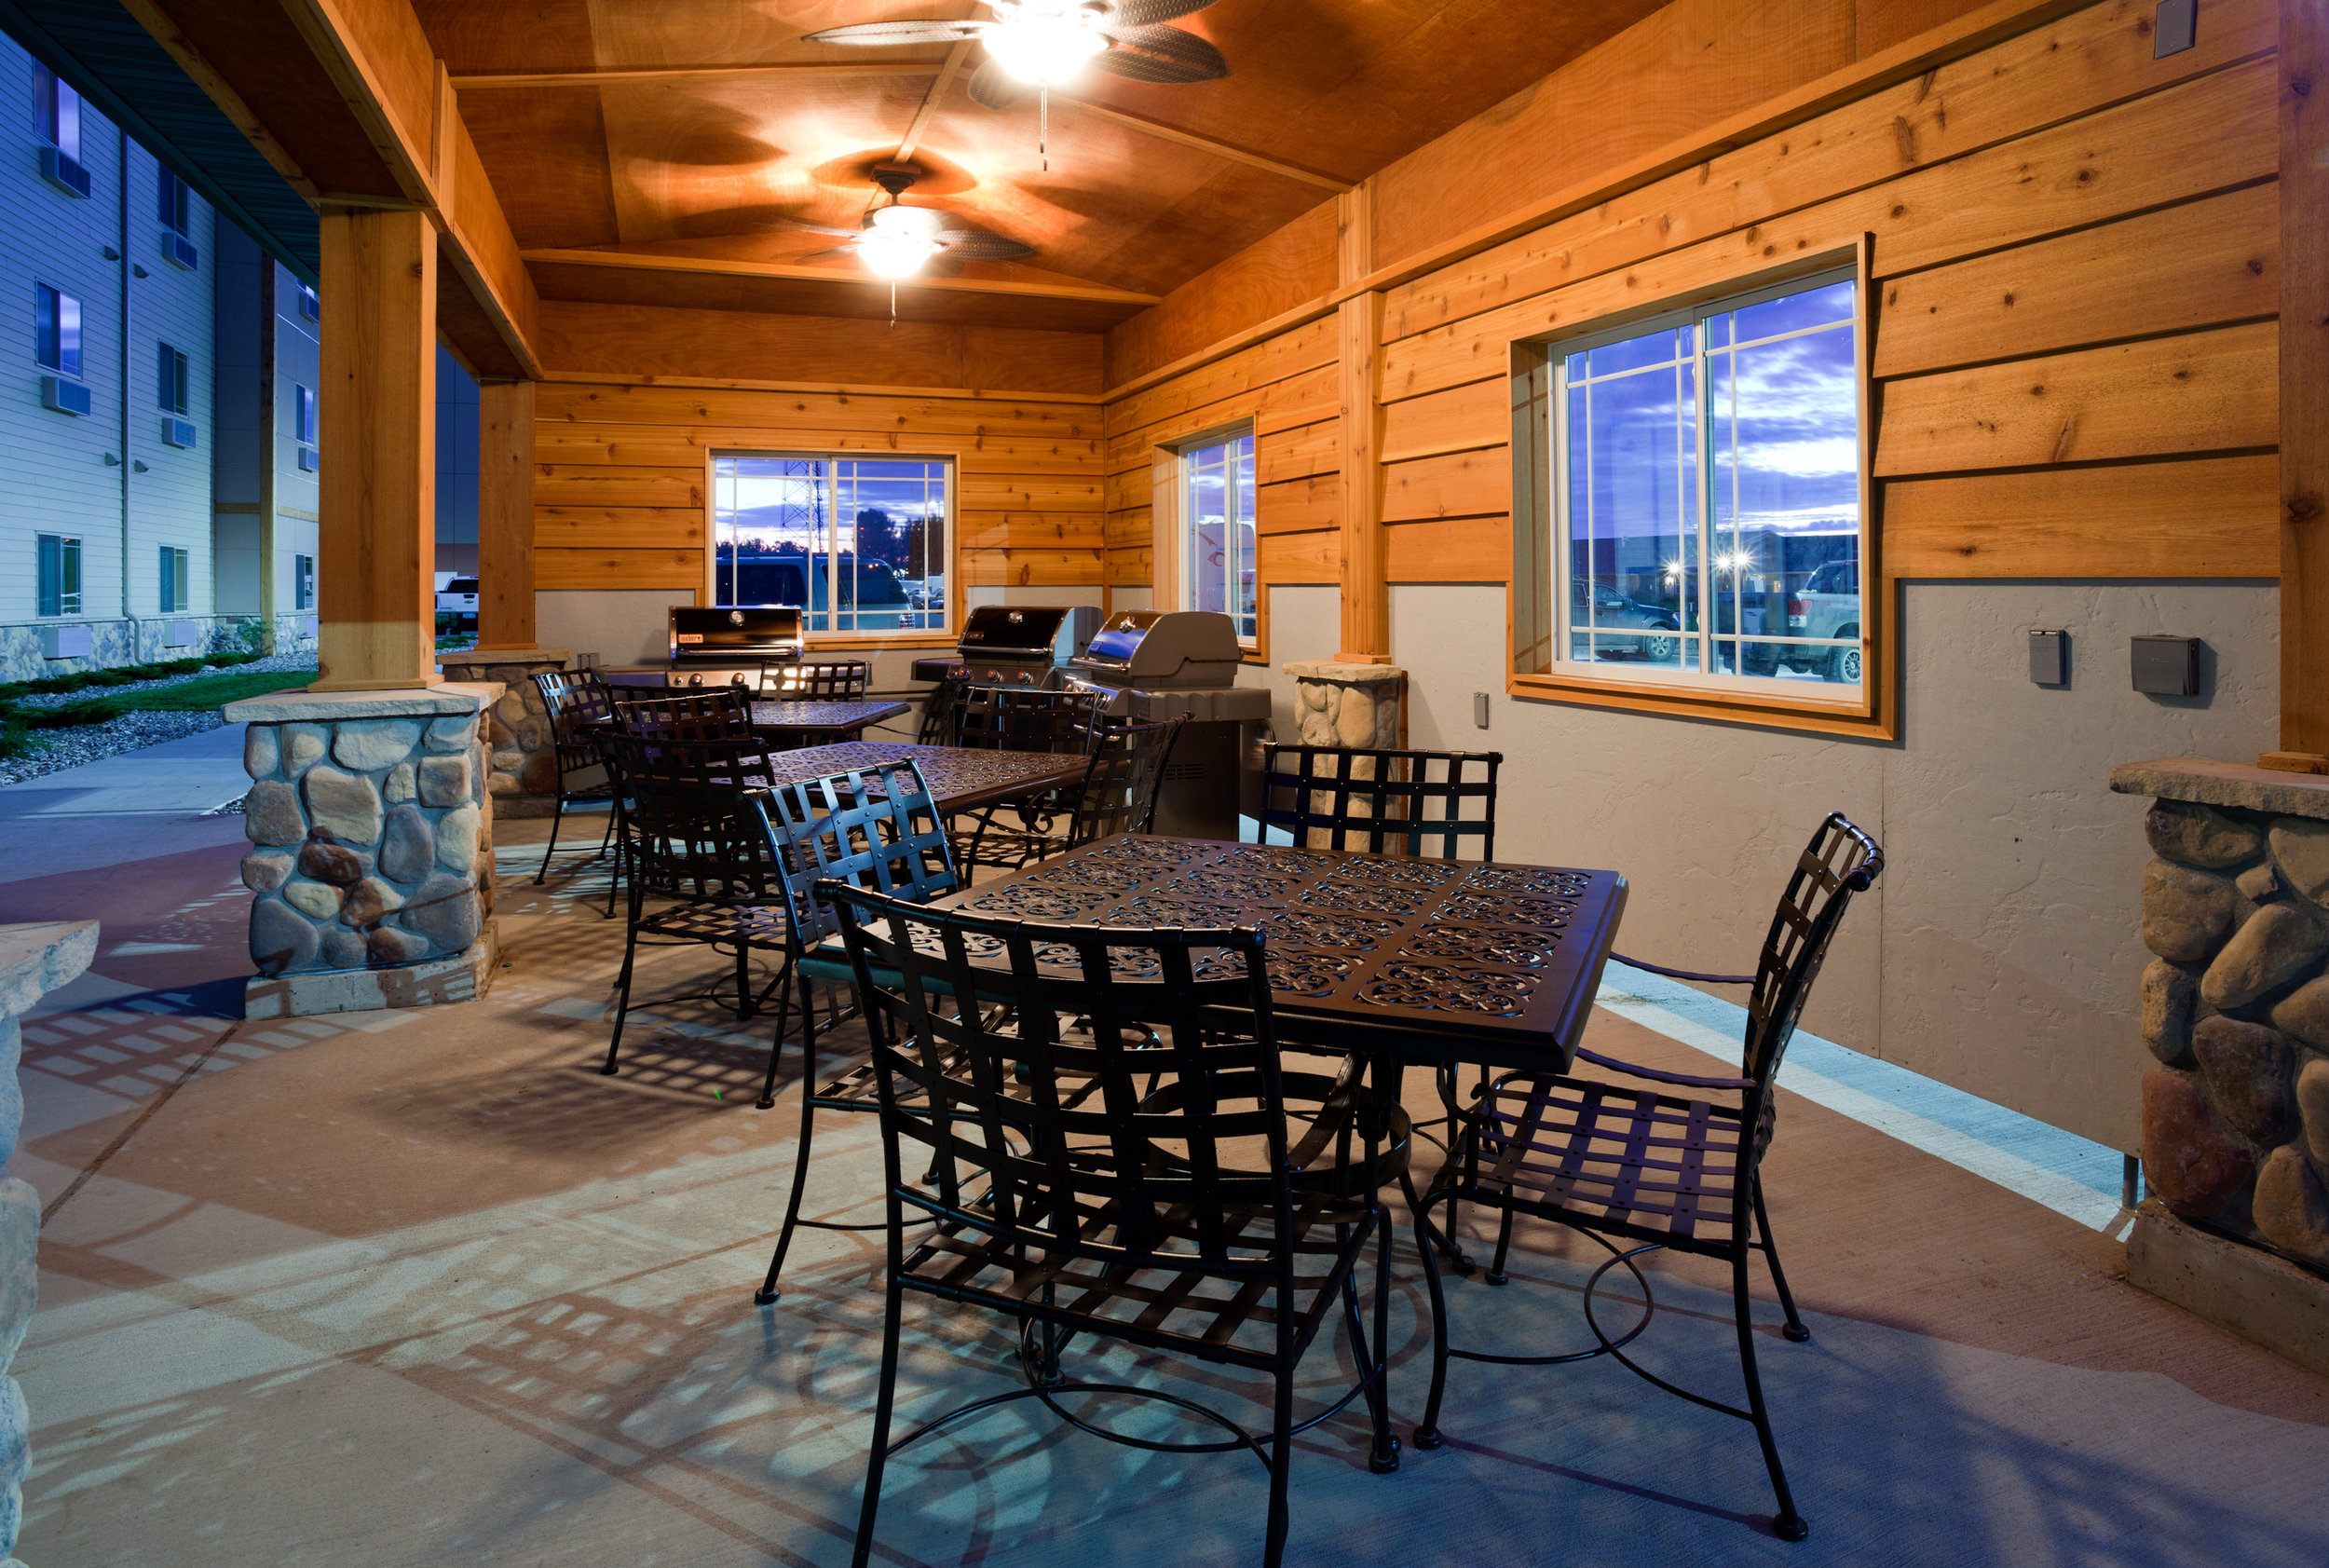 Seating area in the the Souris Valley Suites in Minot, ND